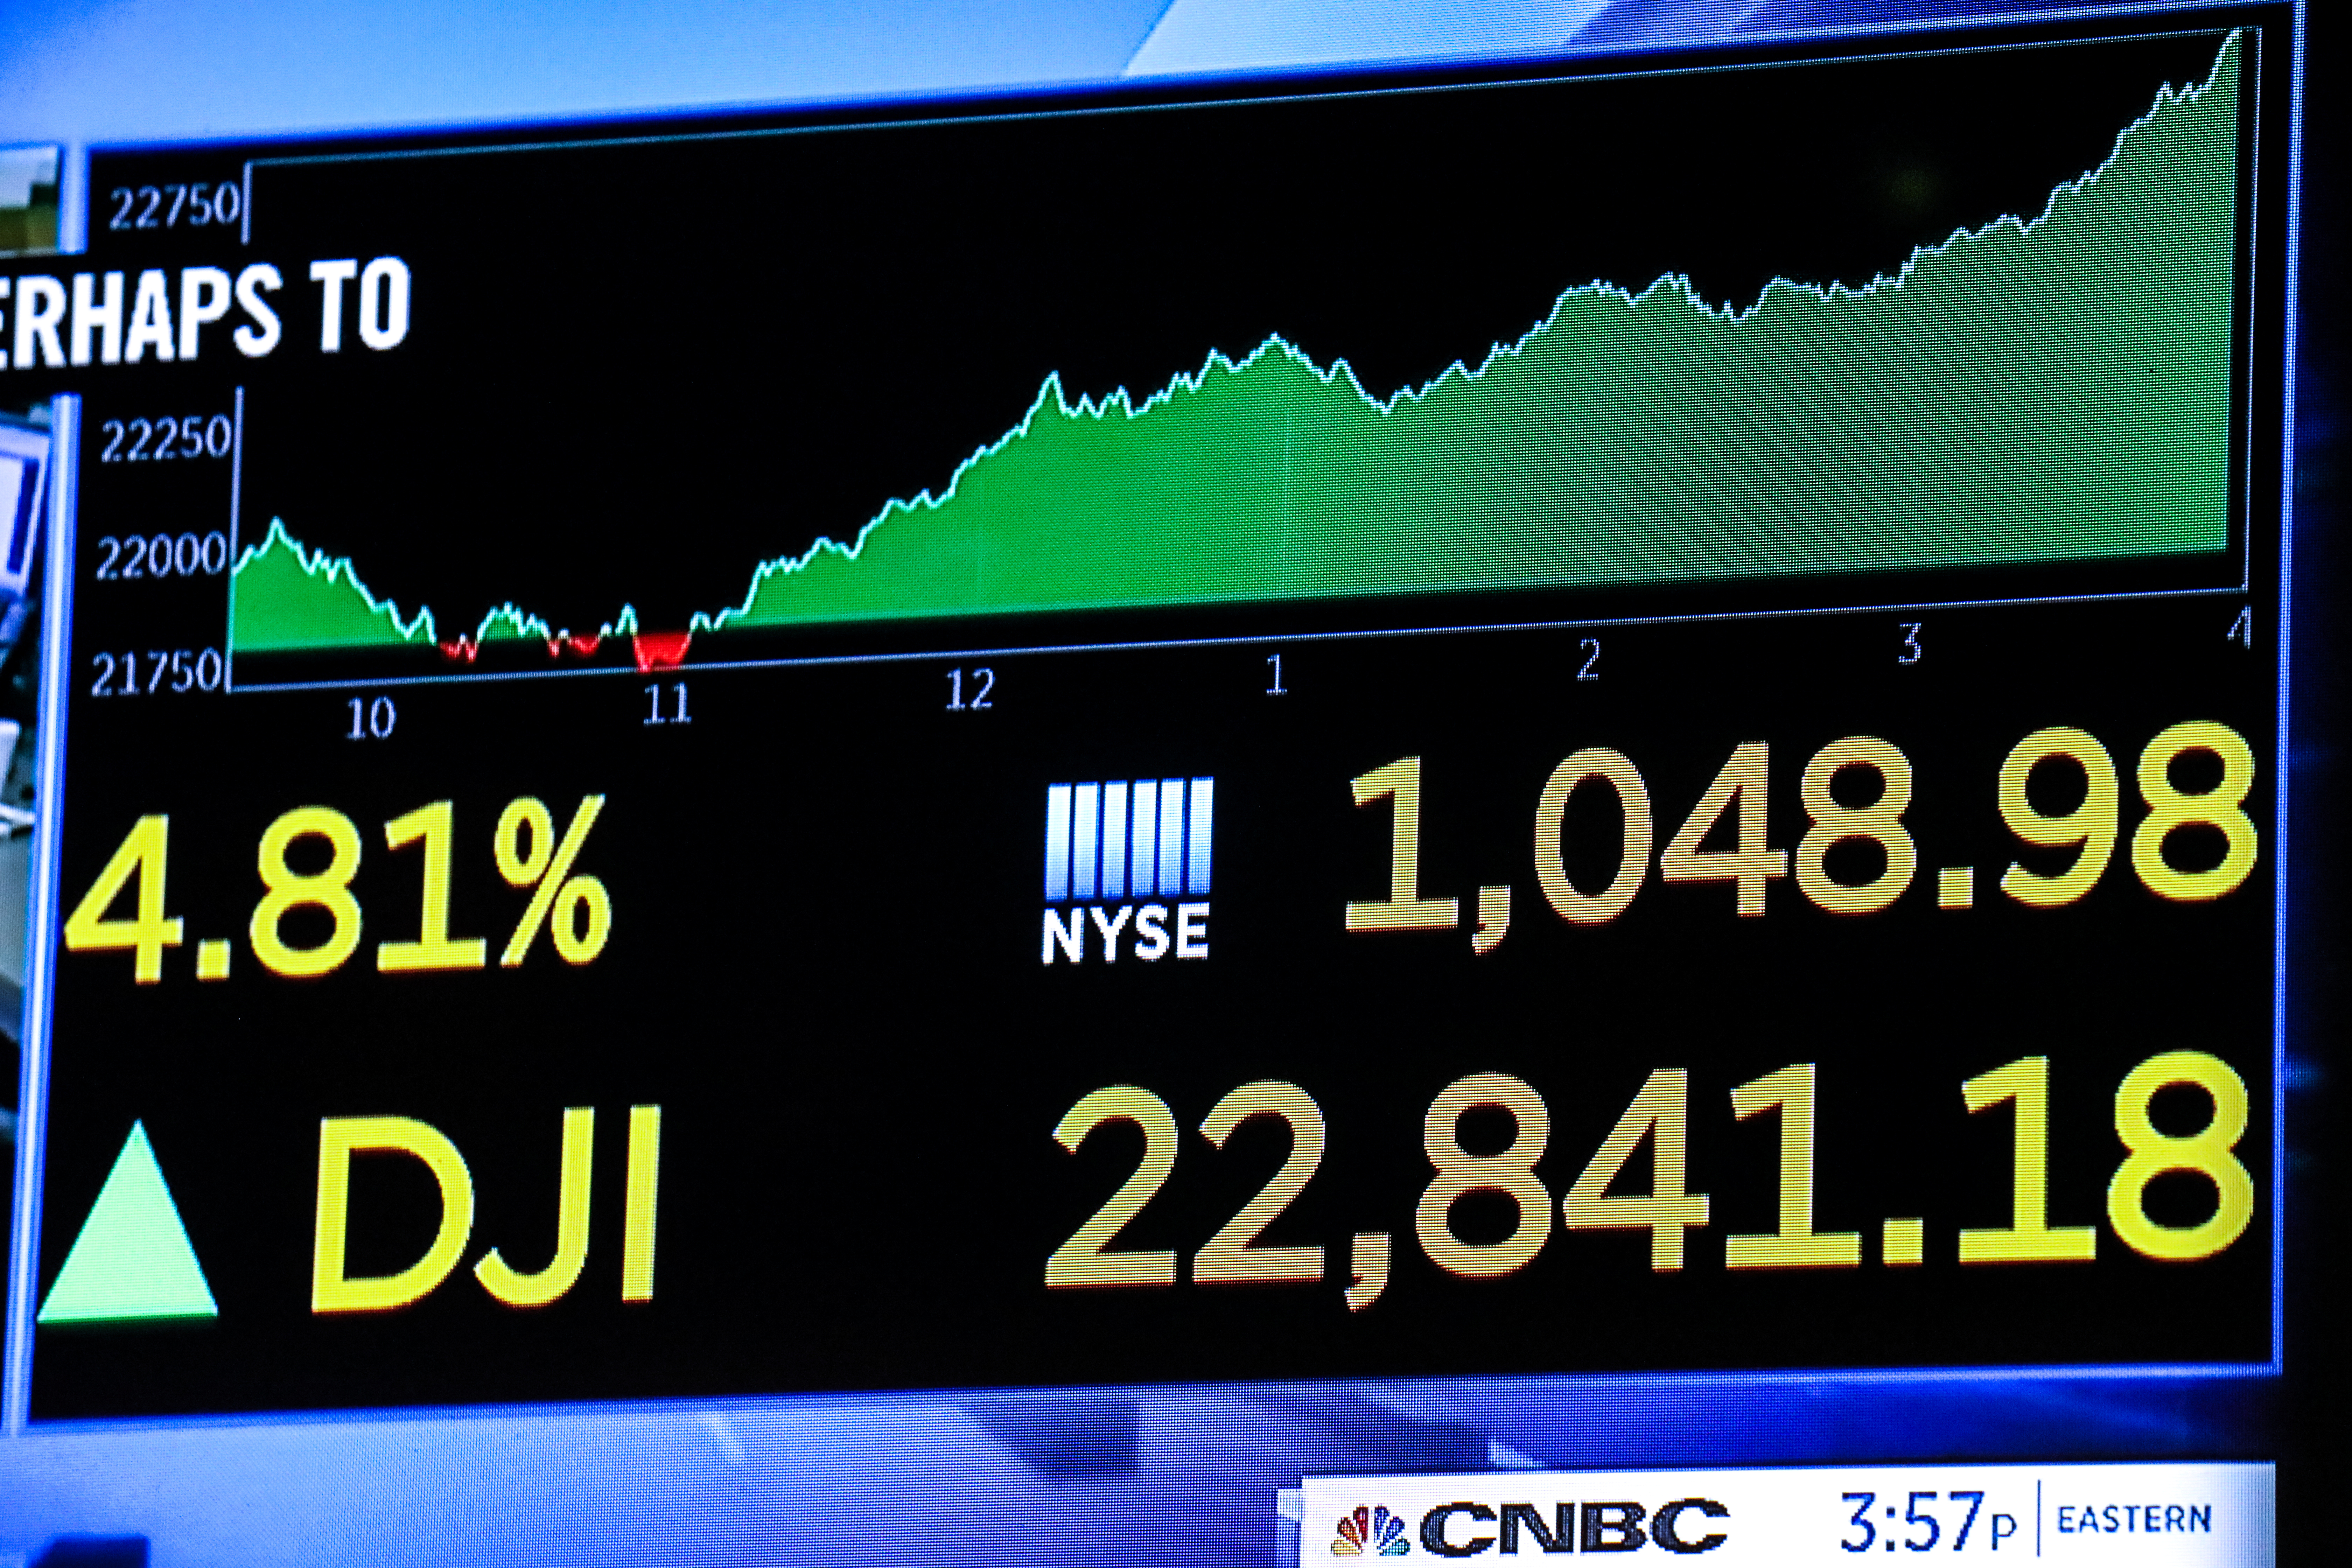 A screen displays the Dow Jones Industrial Average after the close of trading on the floor of the New York Stock Exchange (NYSE) in New York City, U.S., December 26, 2018. REUTERS/Jeenah Moon